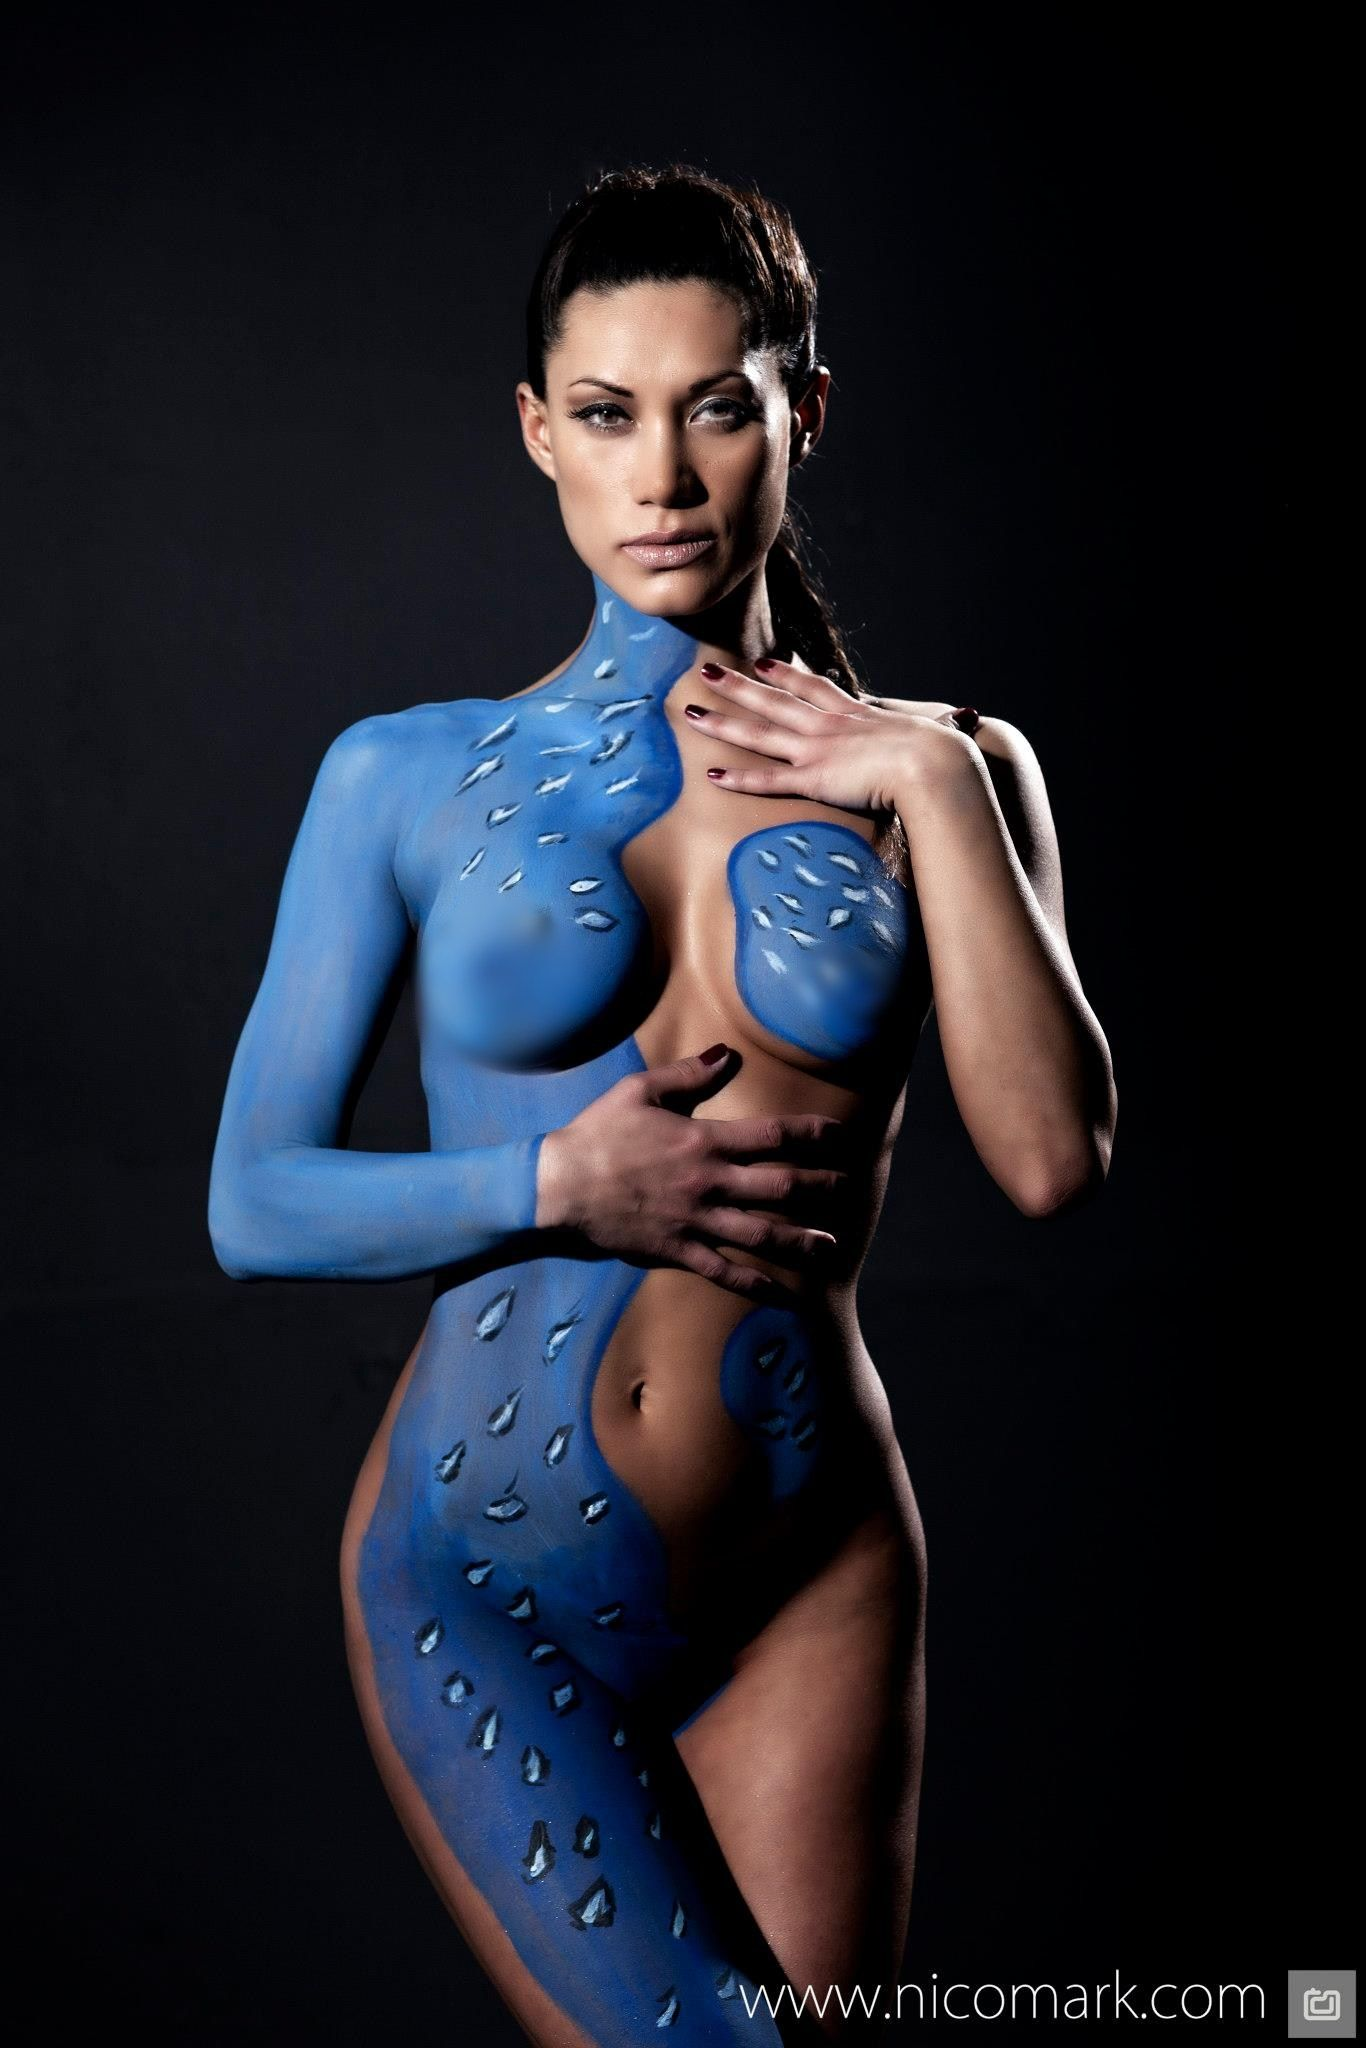 Female body paint penetration samples and